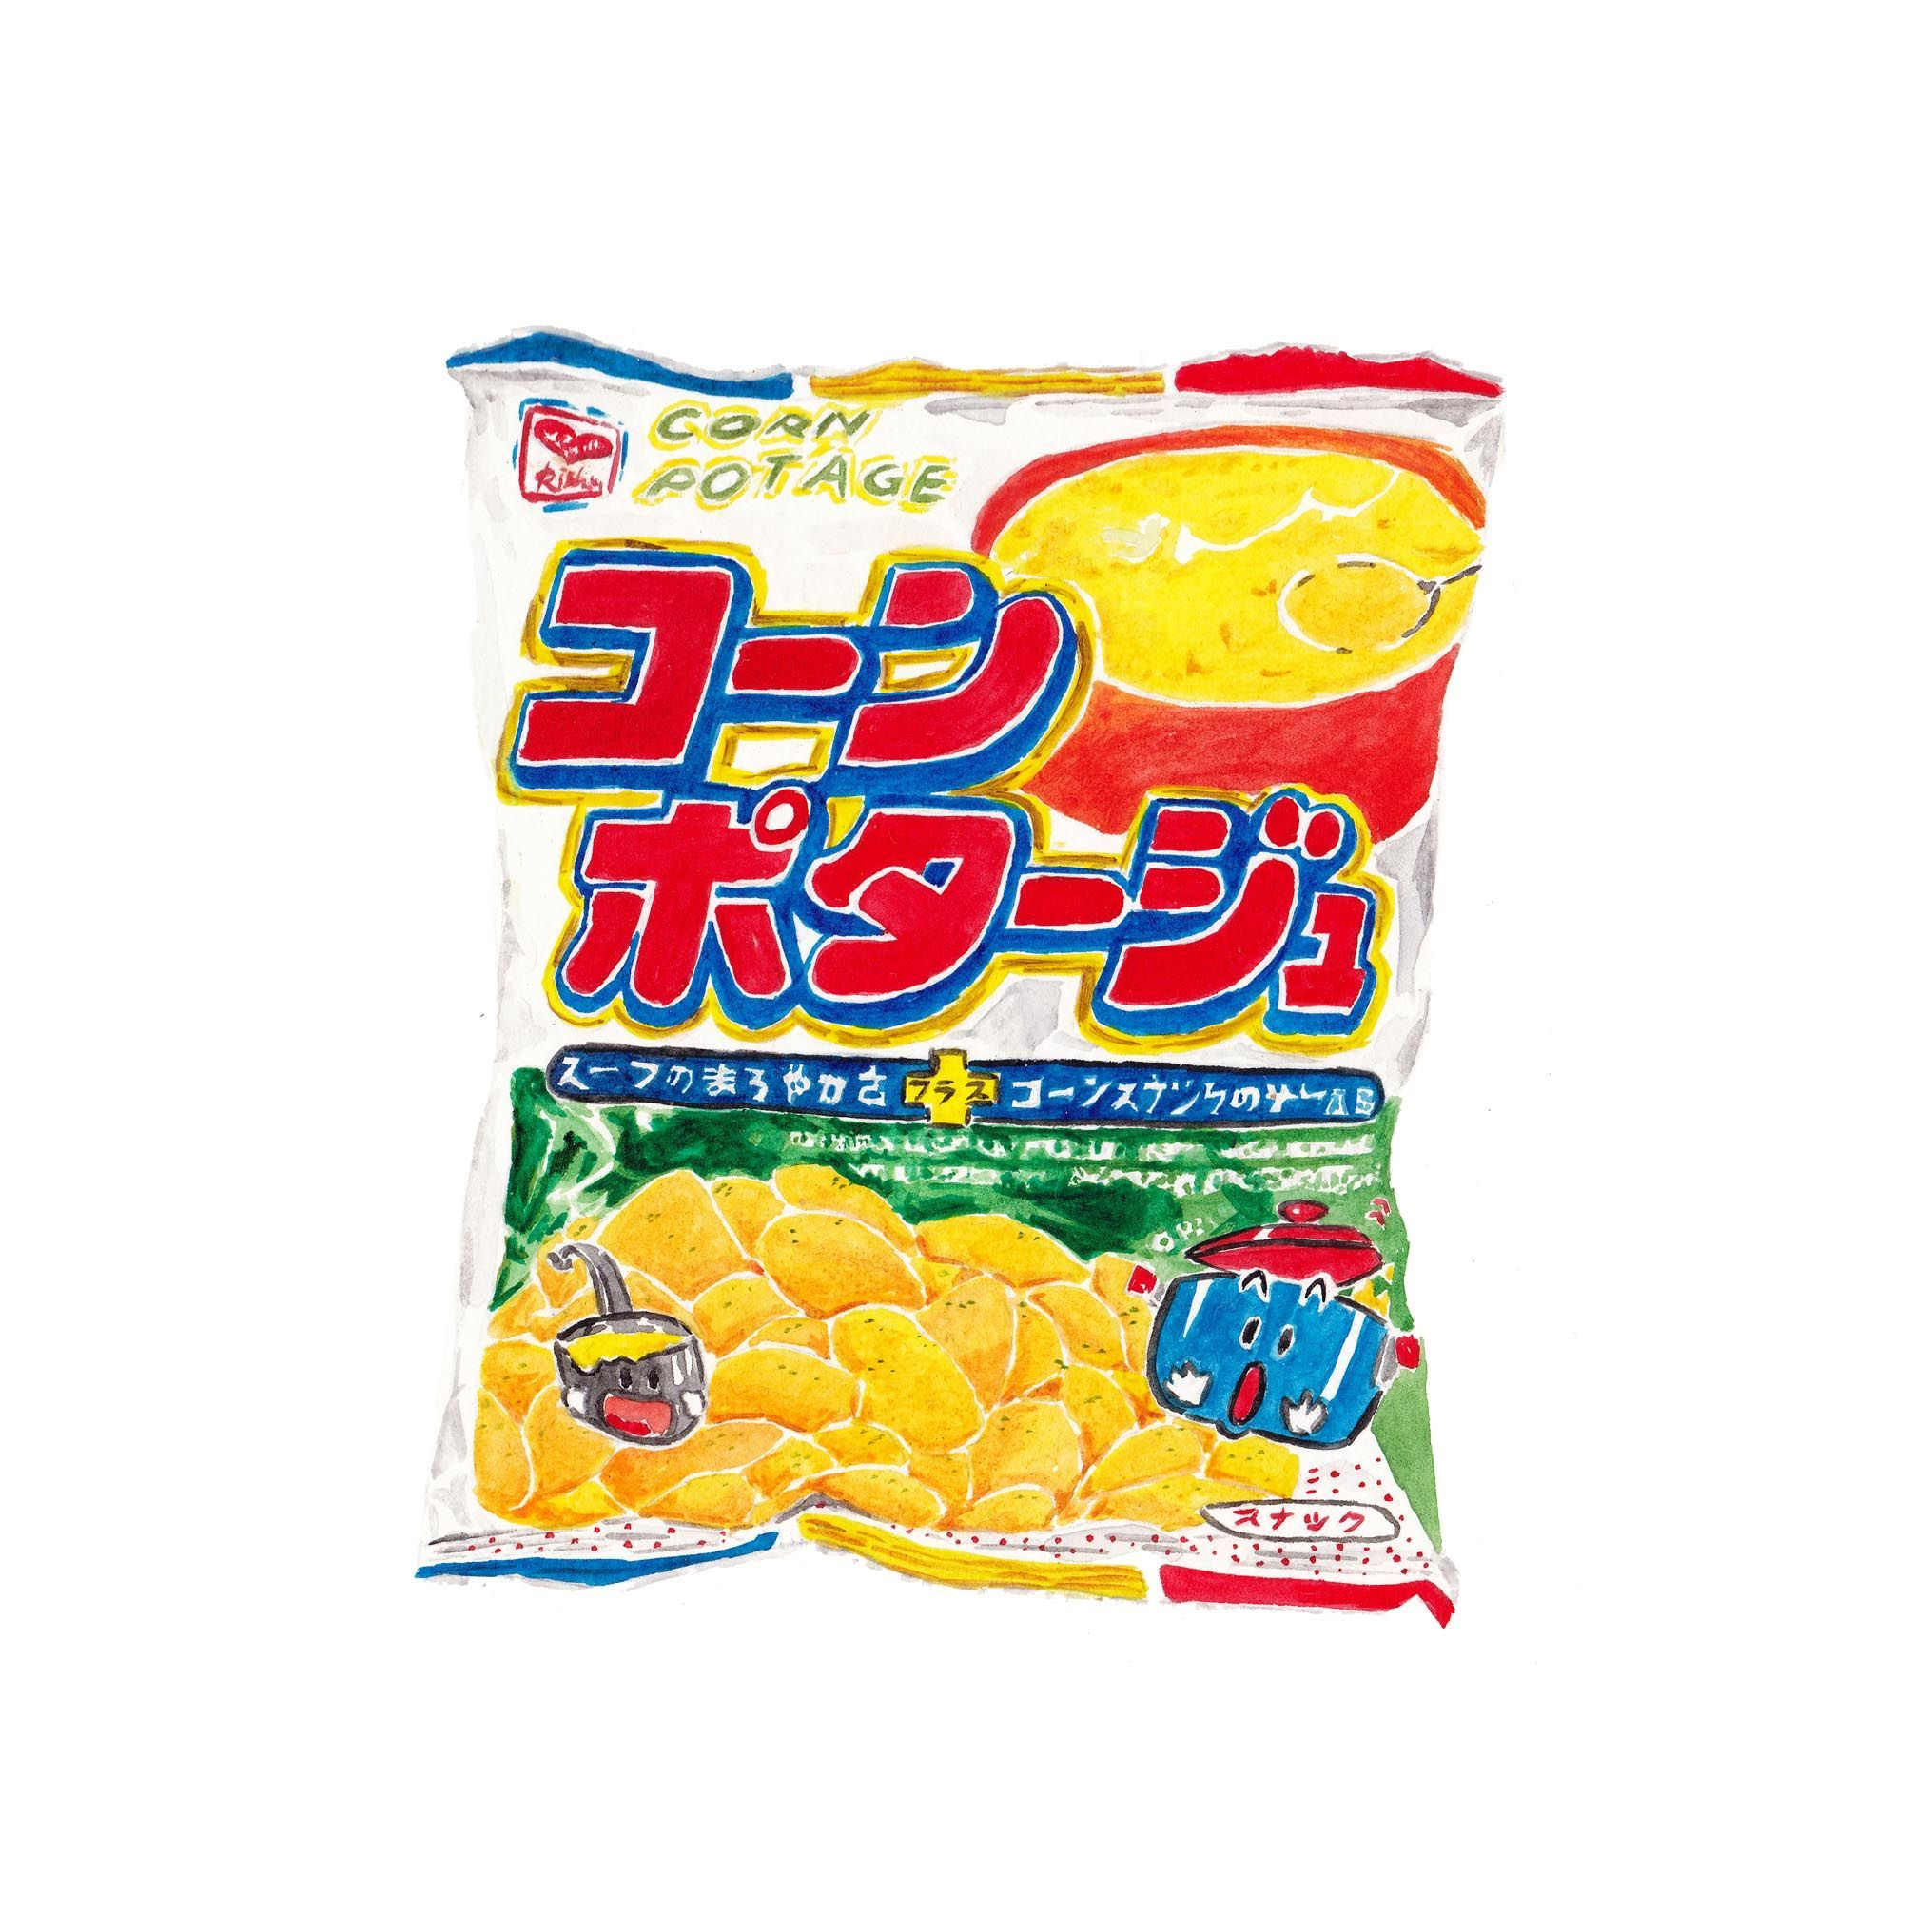 2031x2031 Japan Snack Watercolor My Illustrations